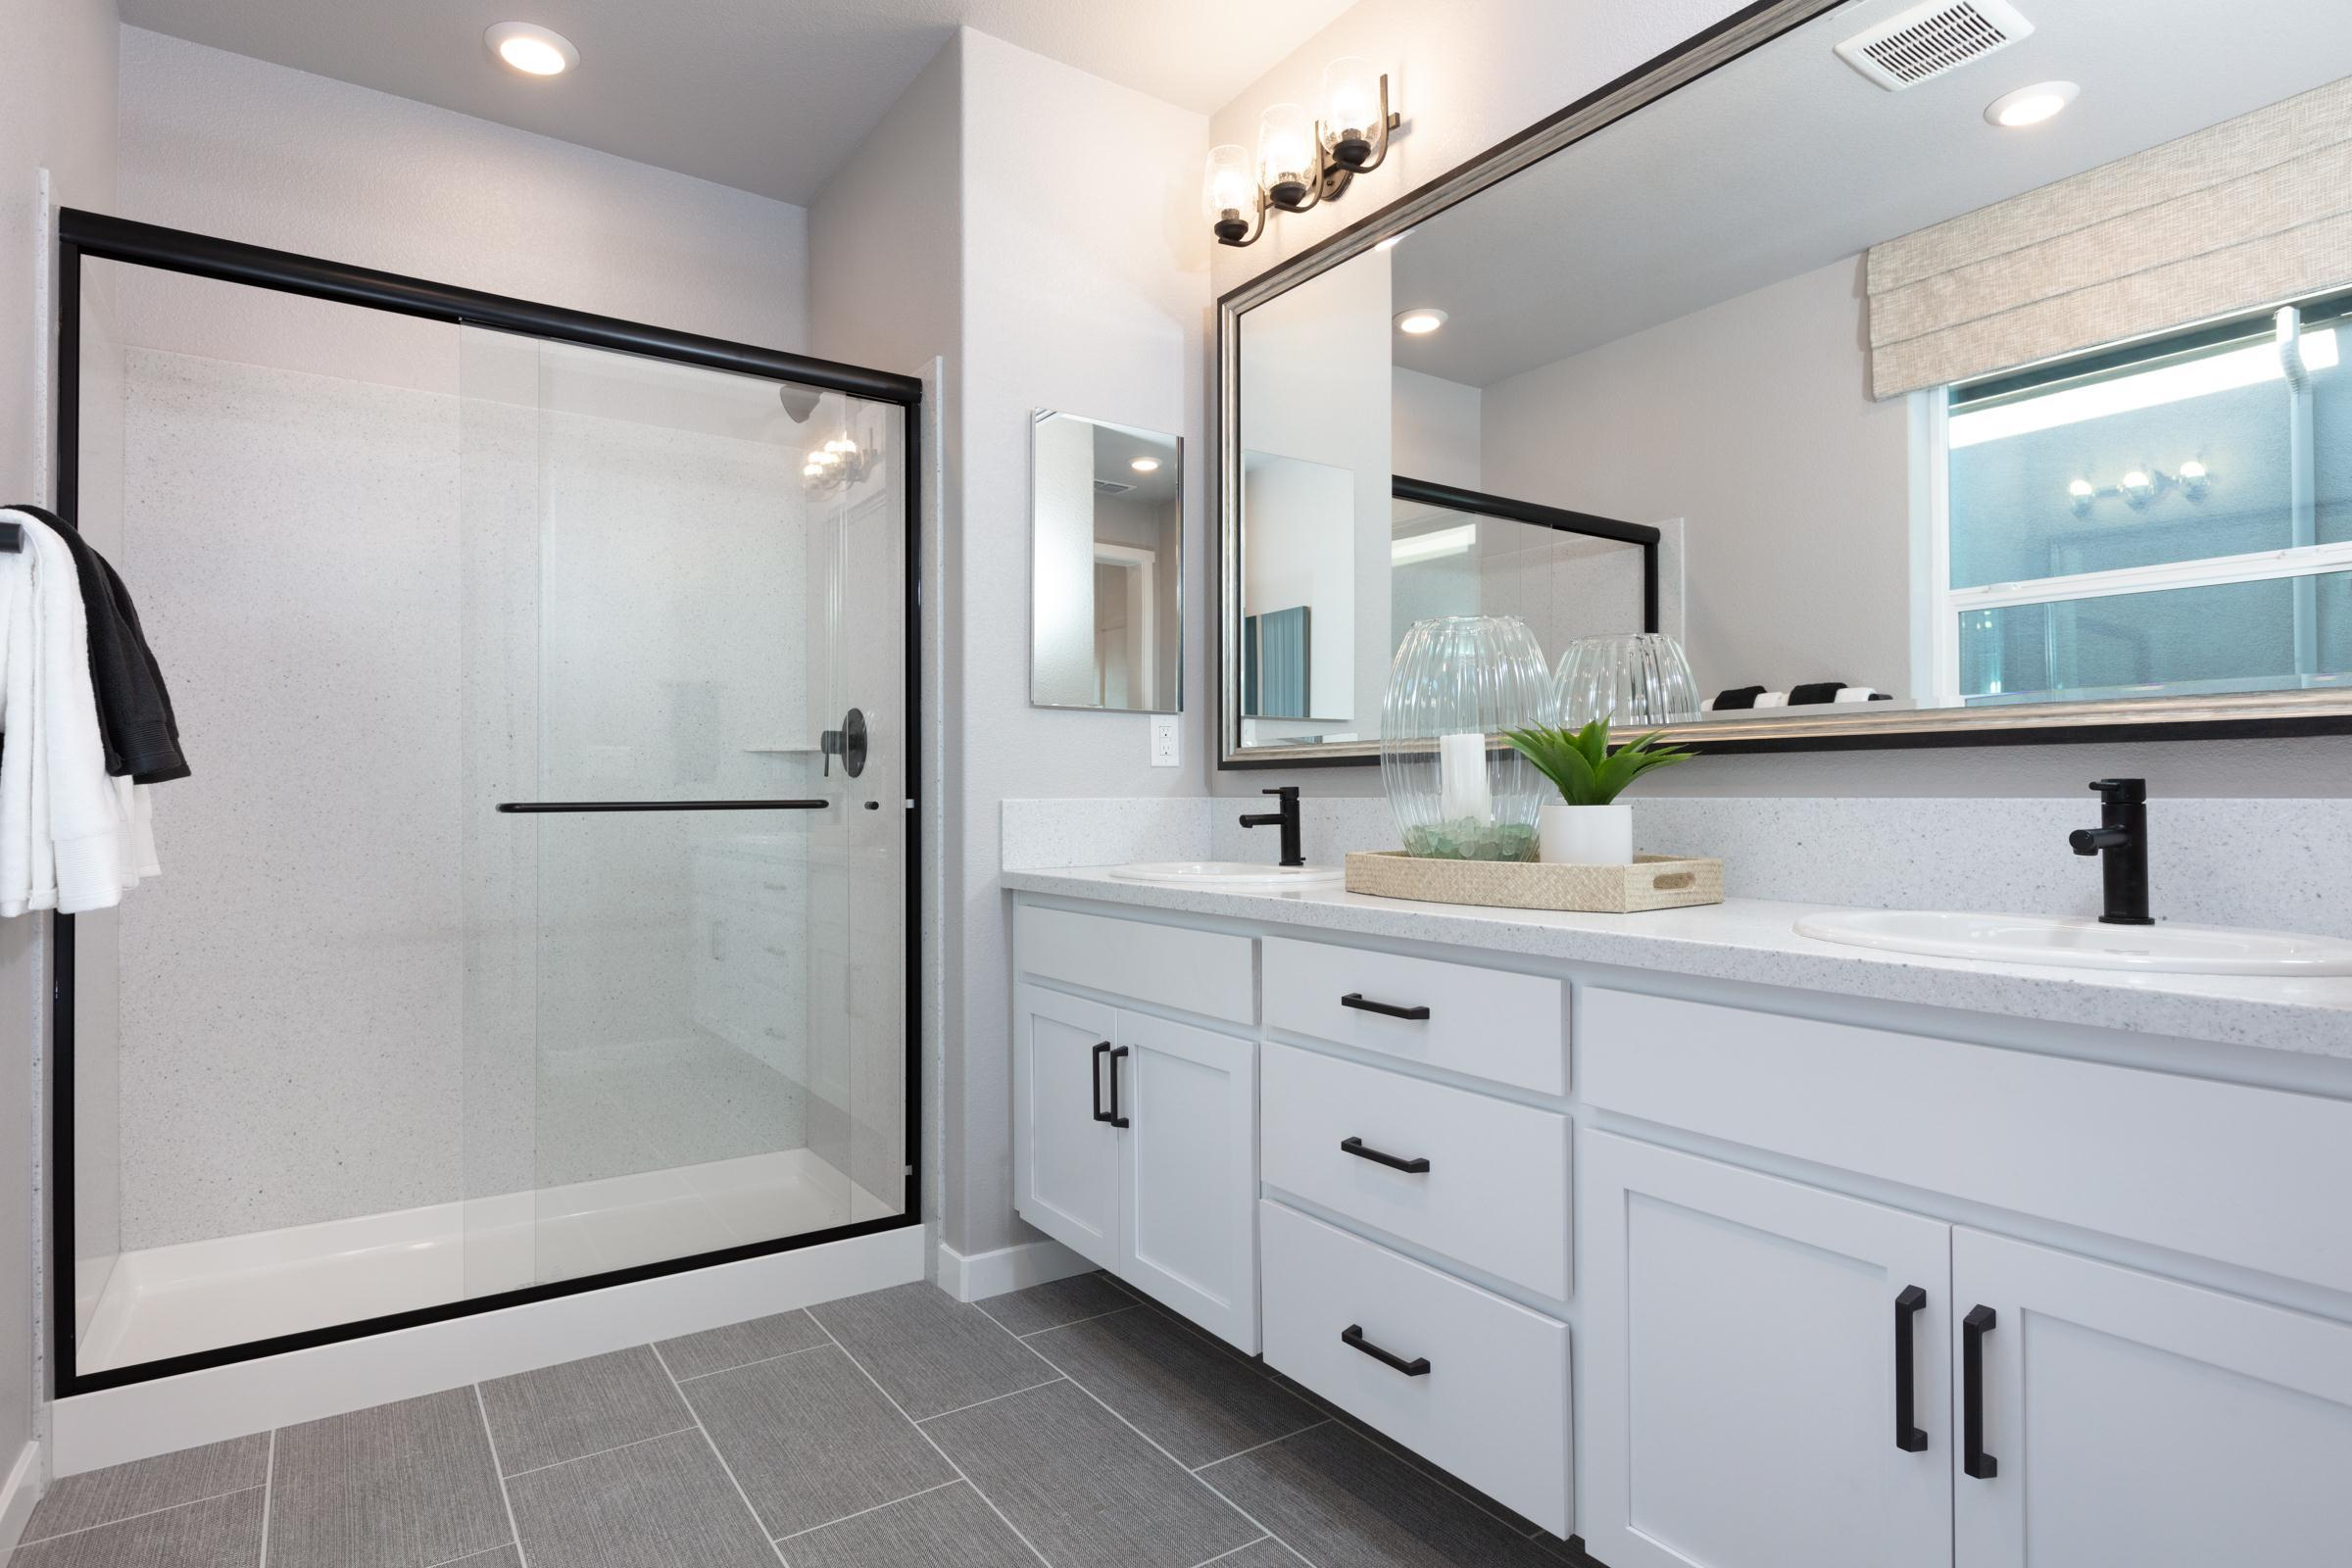 Bathroom featured in the Plan 8 By Anthem United Homes Inc in Sacramento, CA